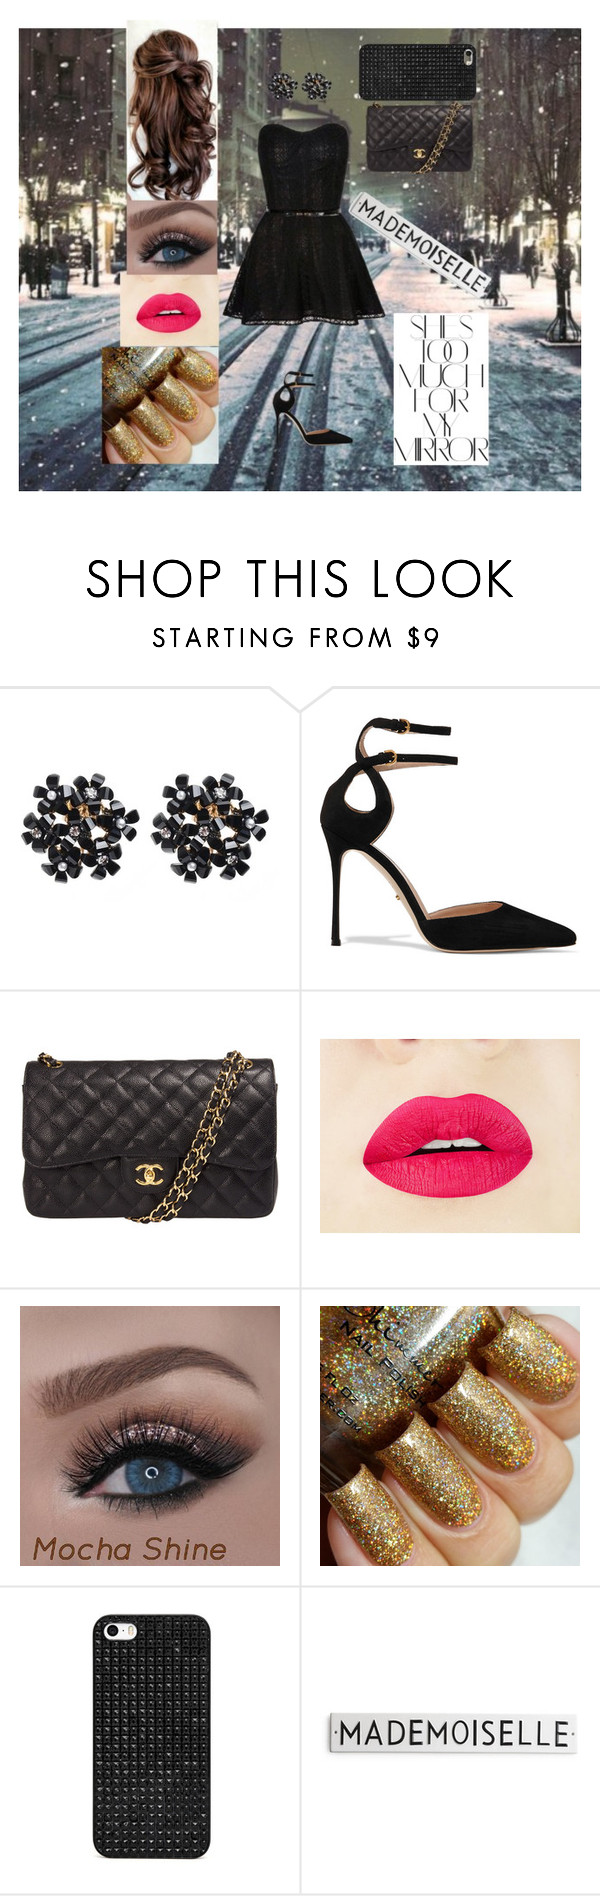 """She's Too Much For My Mirror"" by dreamerz-dream-on ❤ liked on Polyvore featuring Sergio Rossi, Chanel, BaubleBar and Rika"